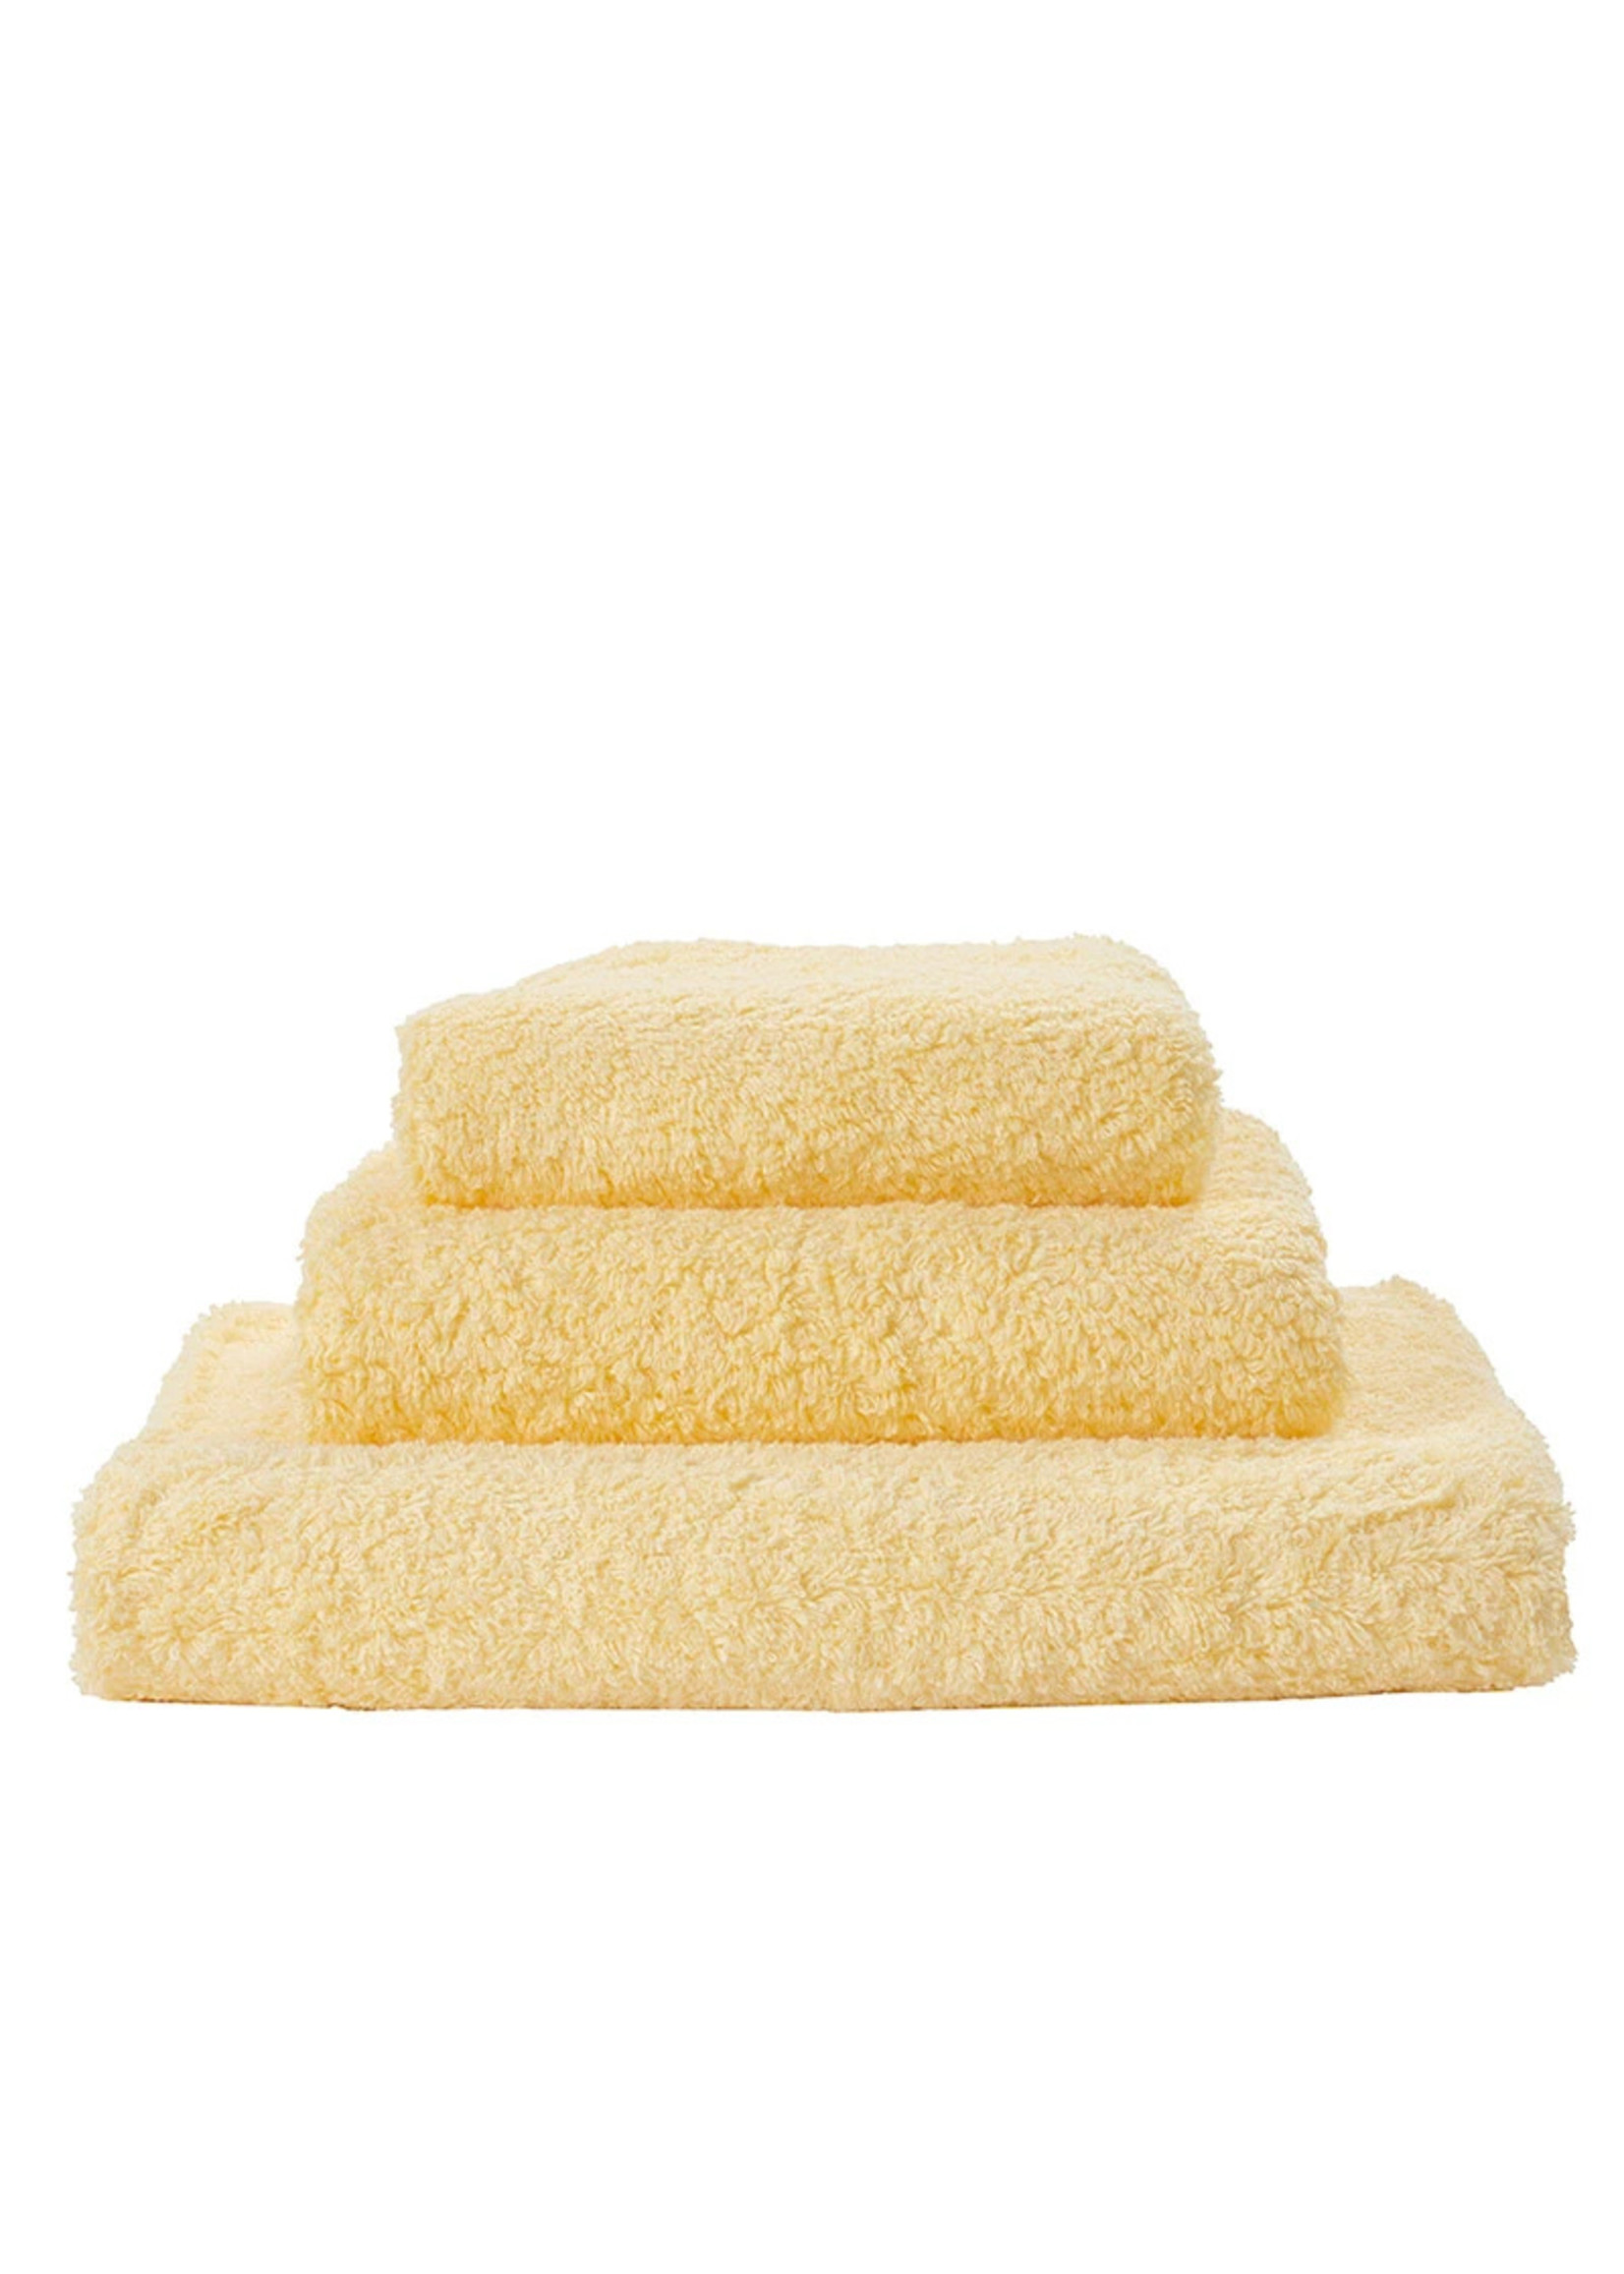 Abyss & Habidecor Super Pile Popcorn Towels